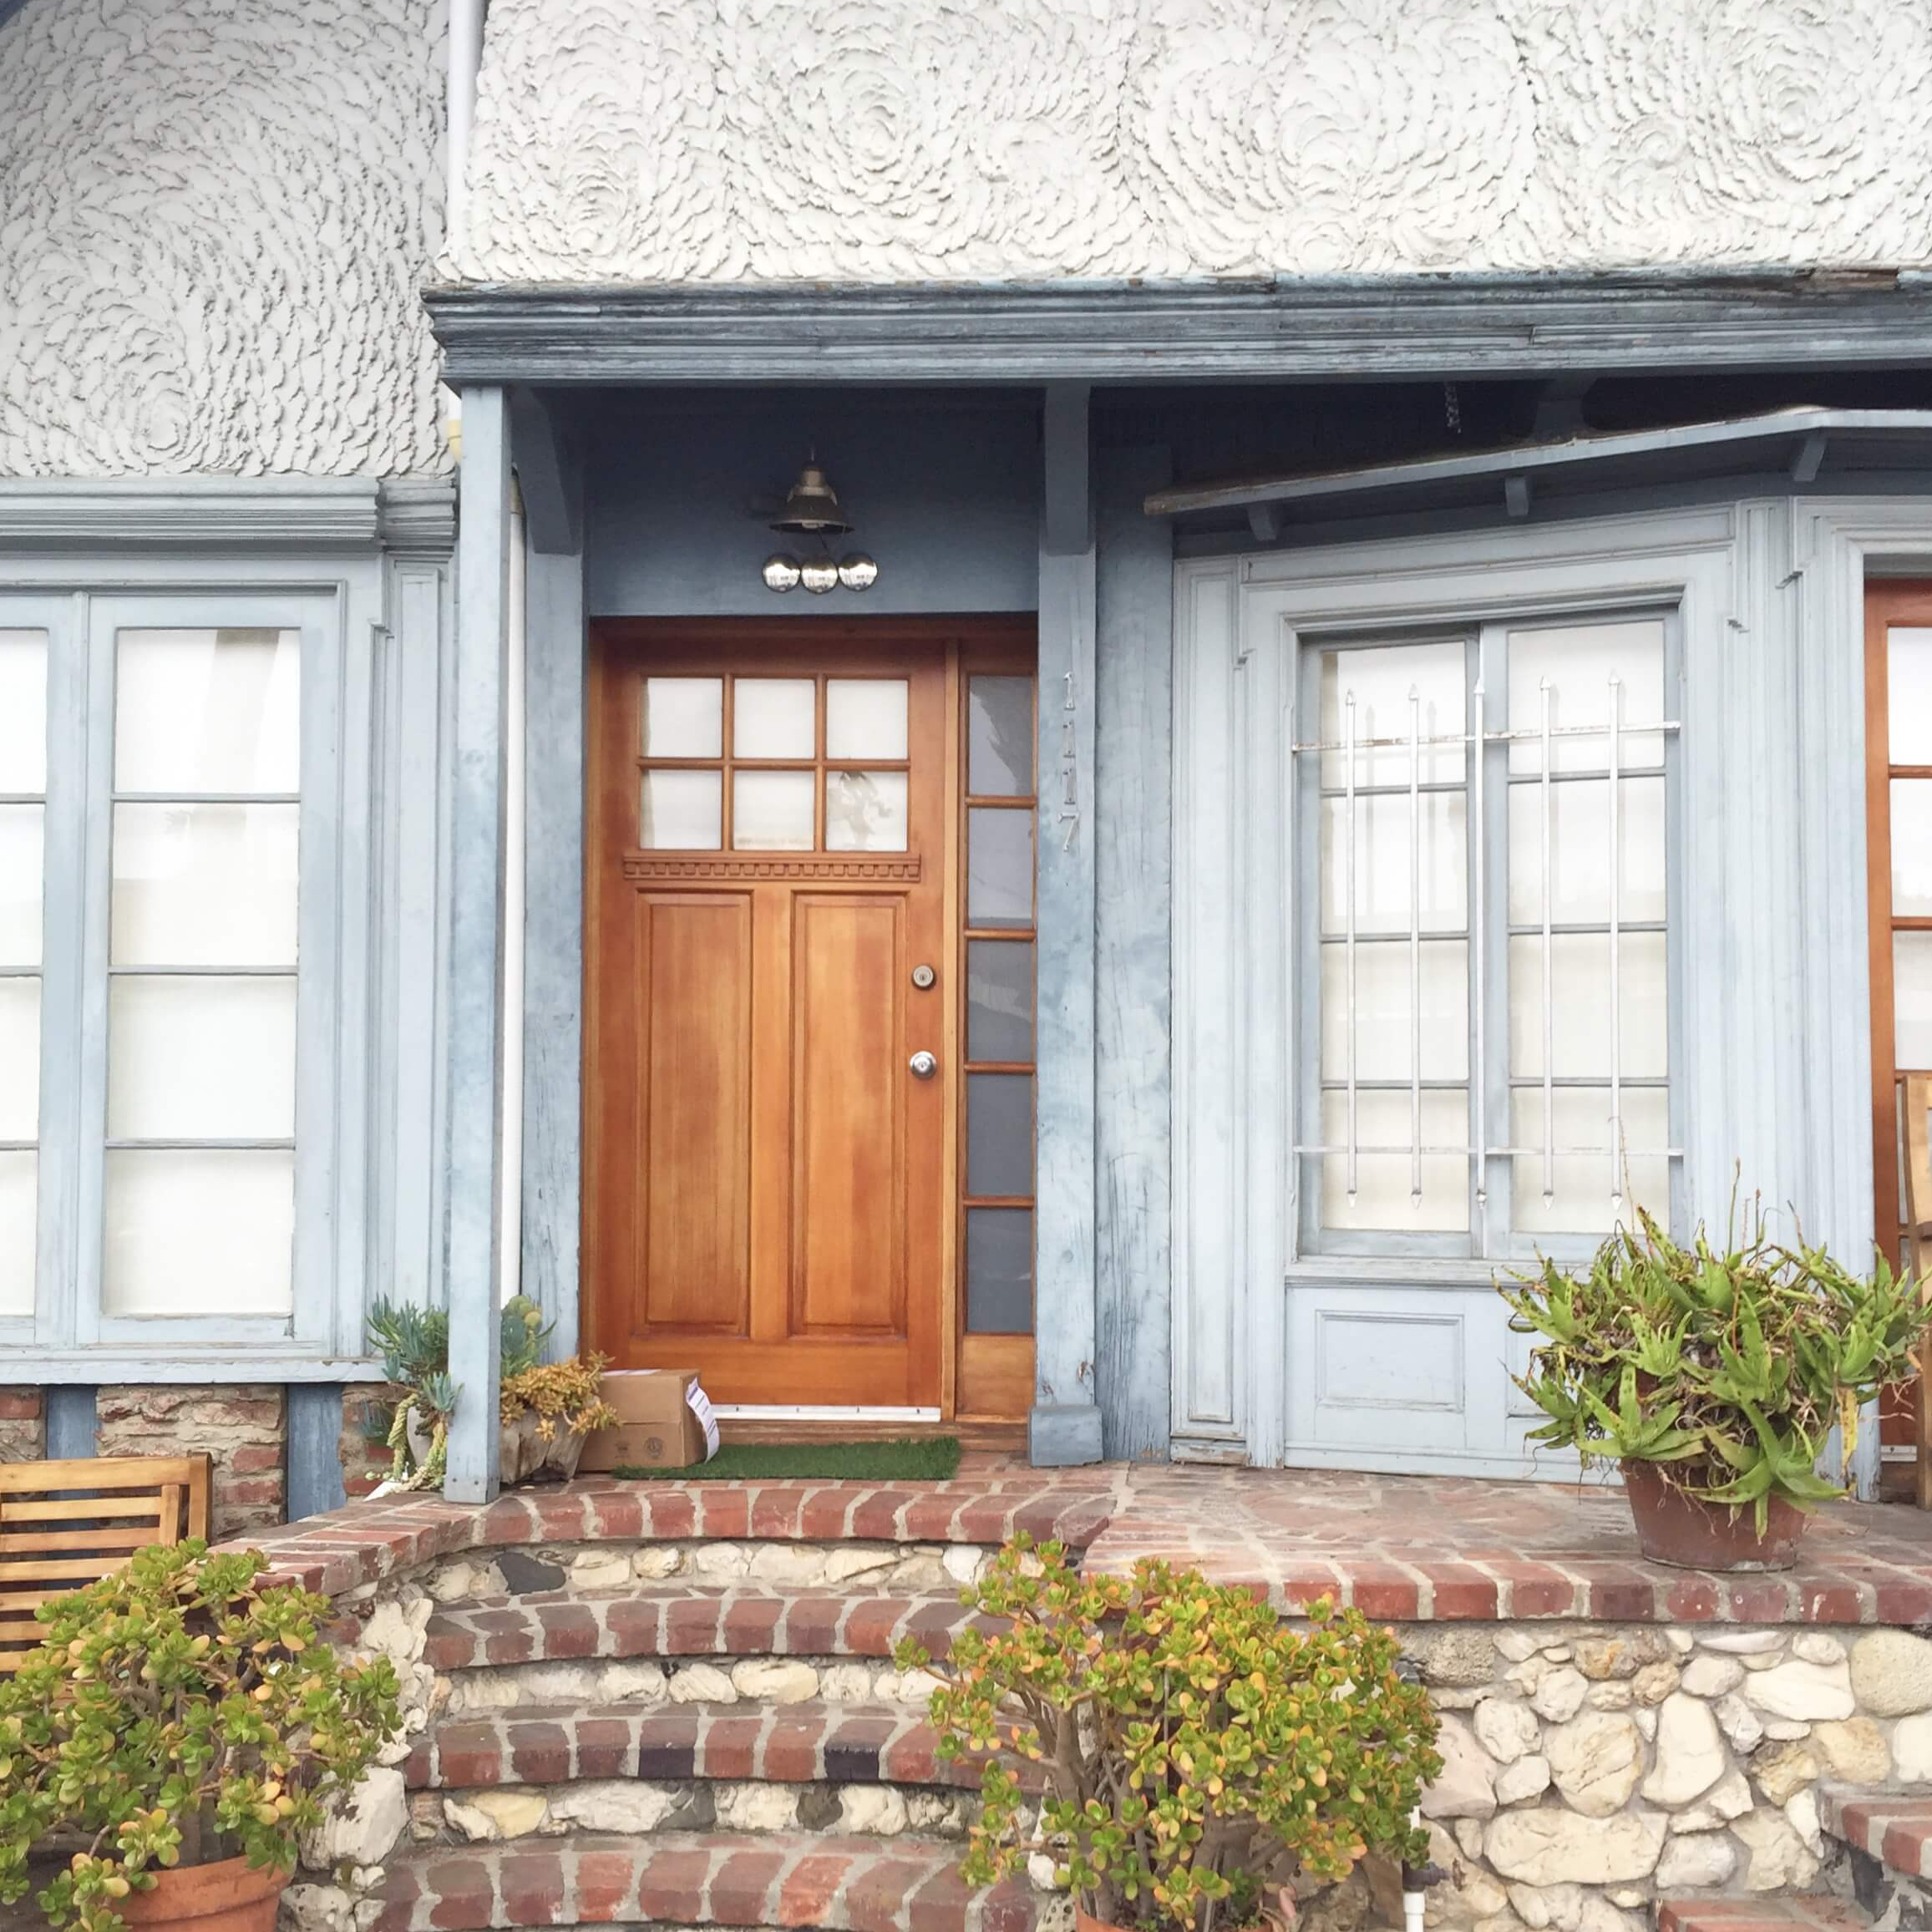 Slate gray and warm wood tone at entry